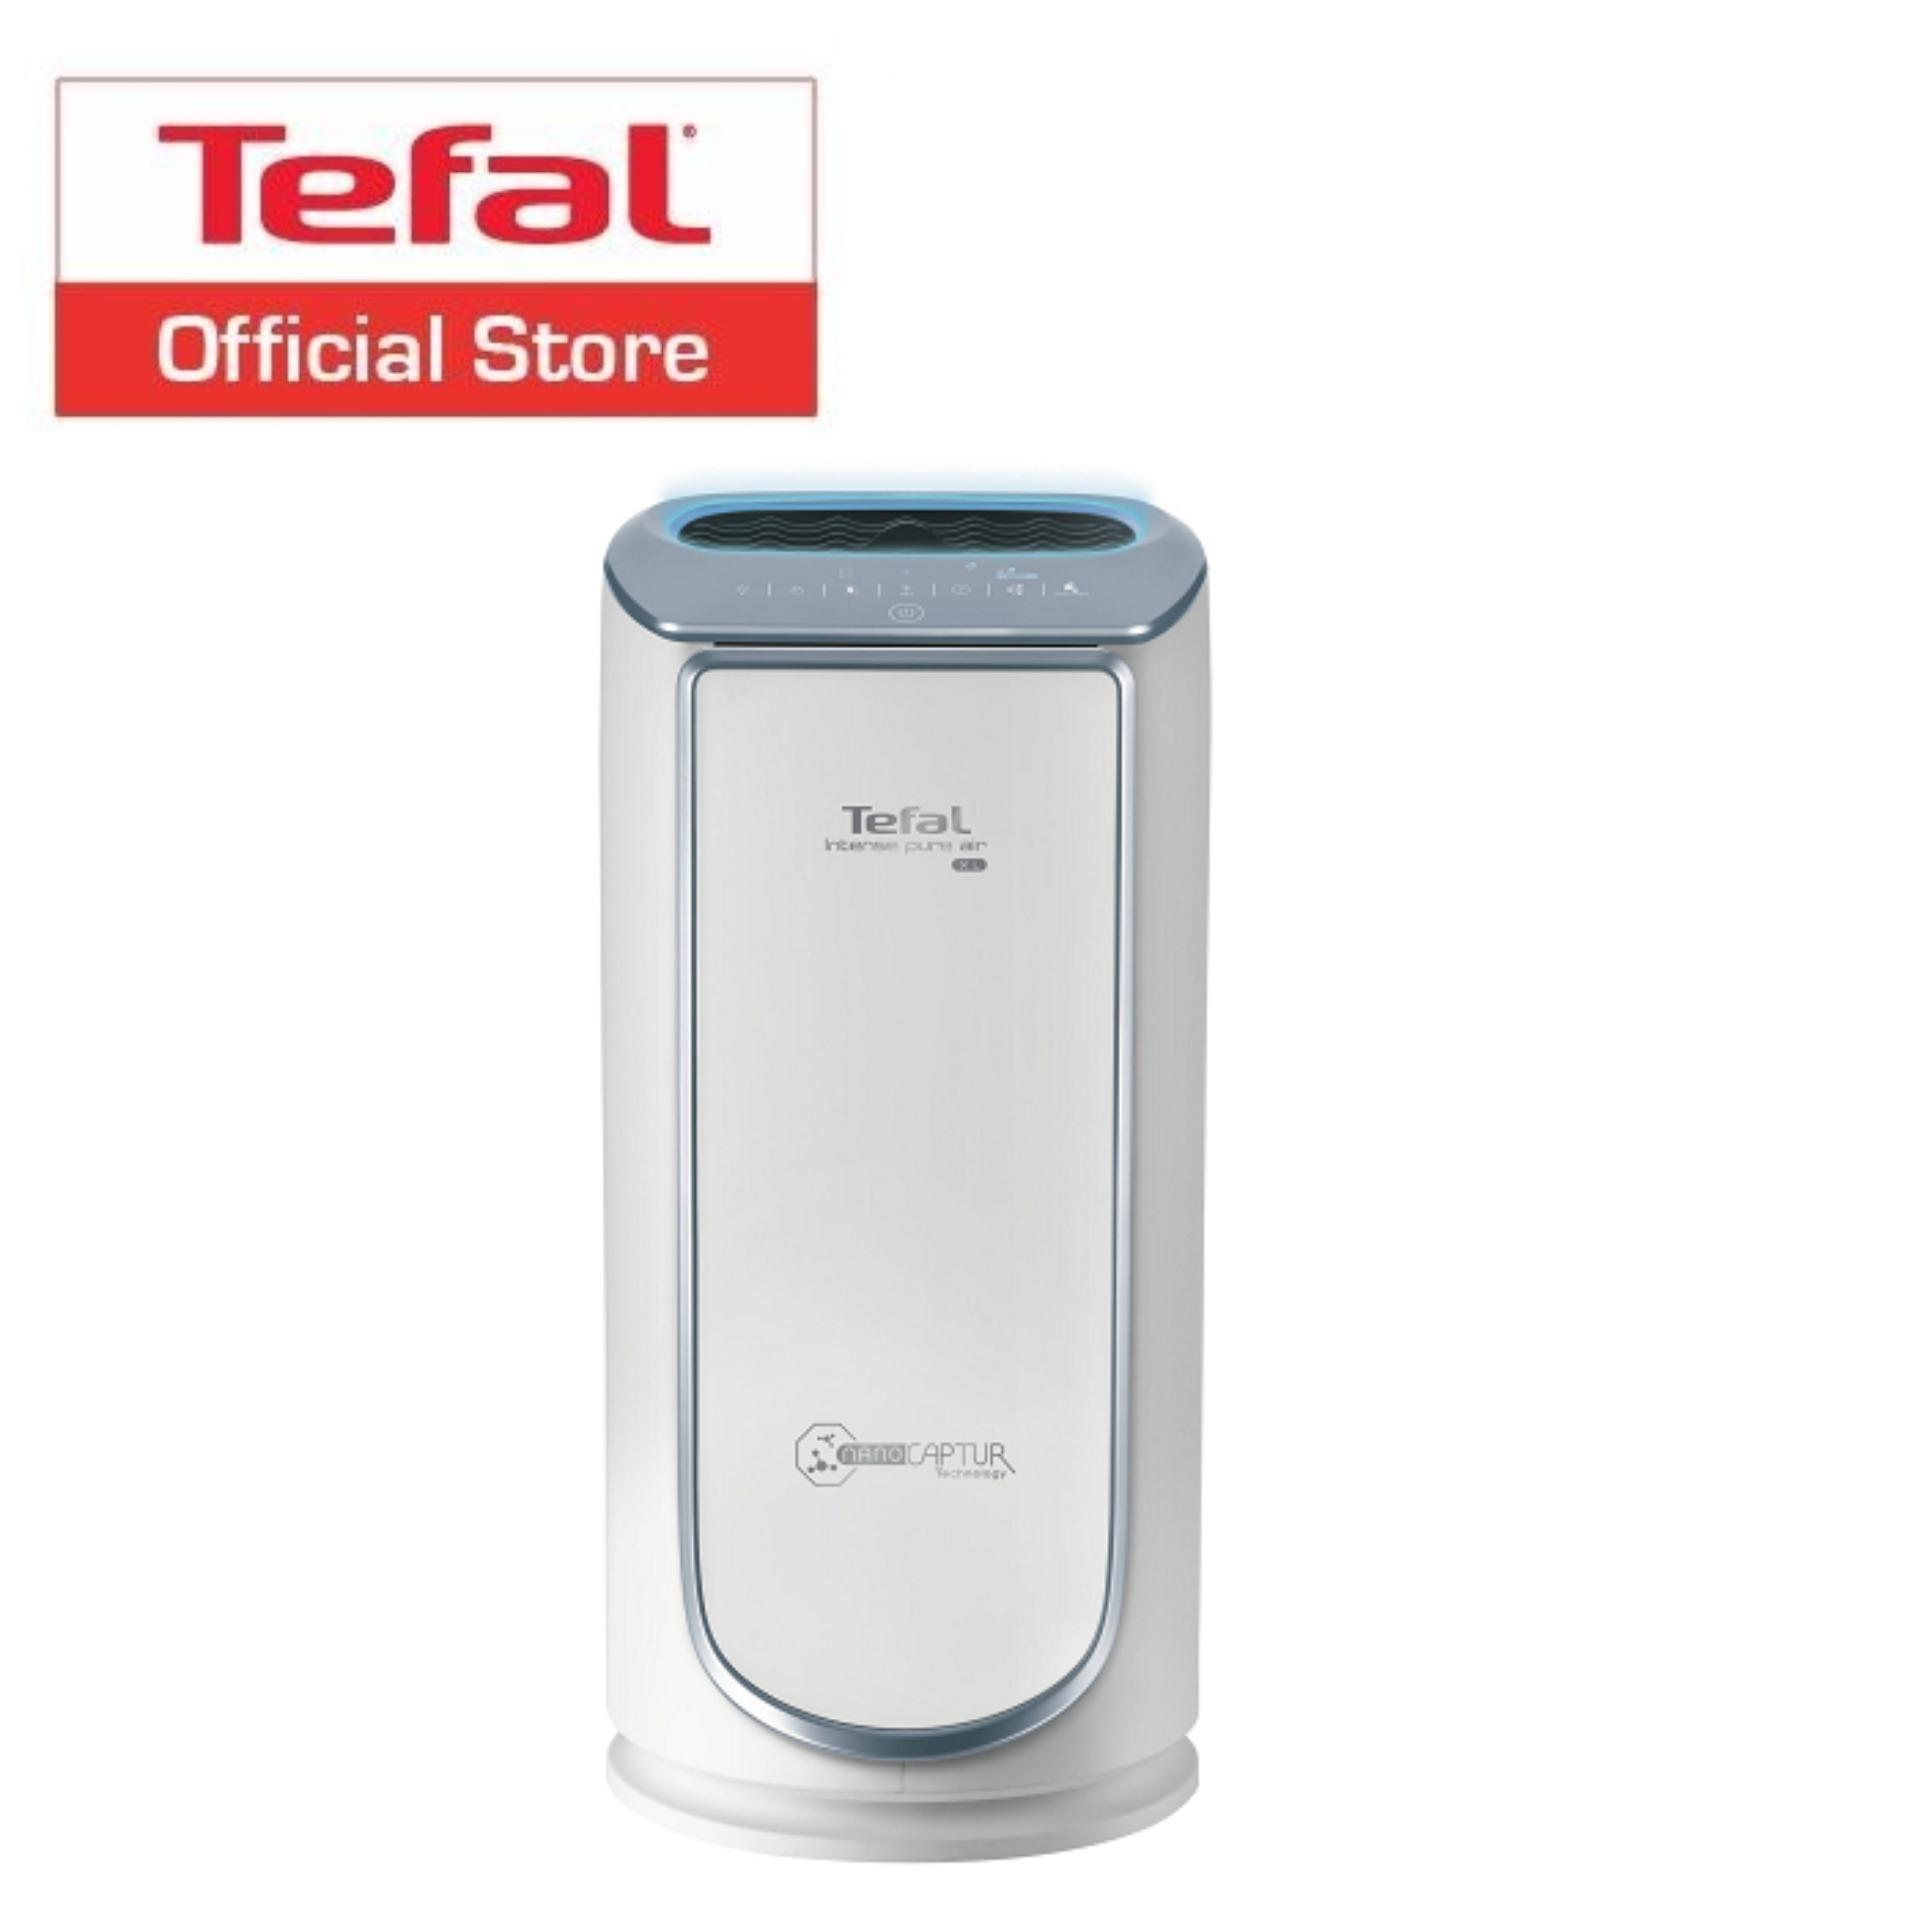 Price Tefal Air Purifier Intense Pure Air Xl Auto Pu6065 Tefal Singapore